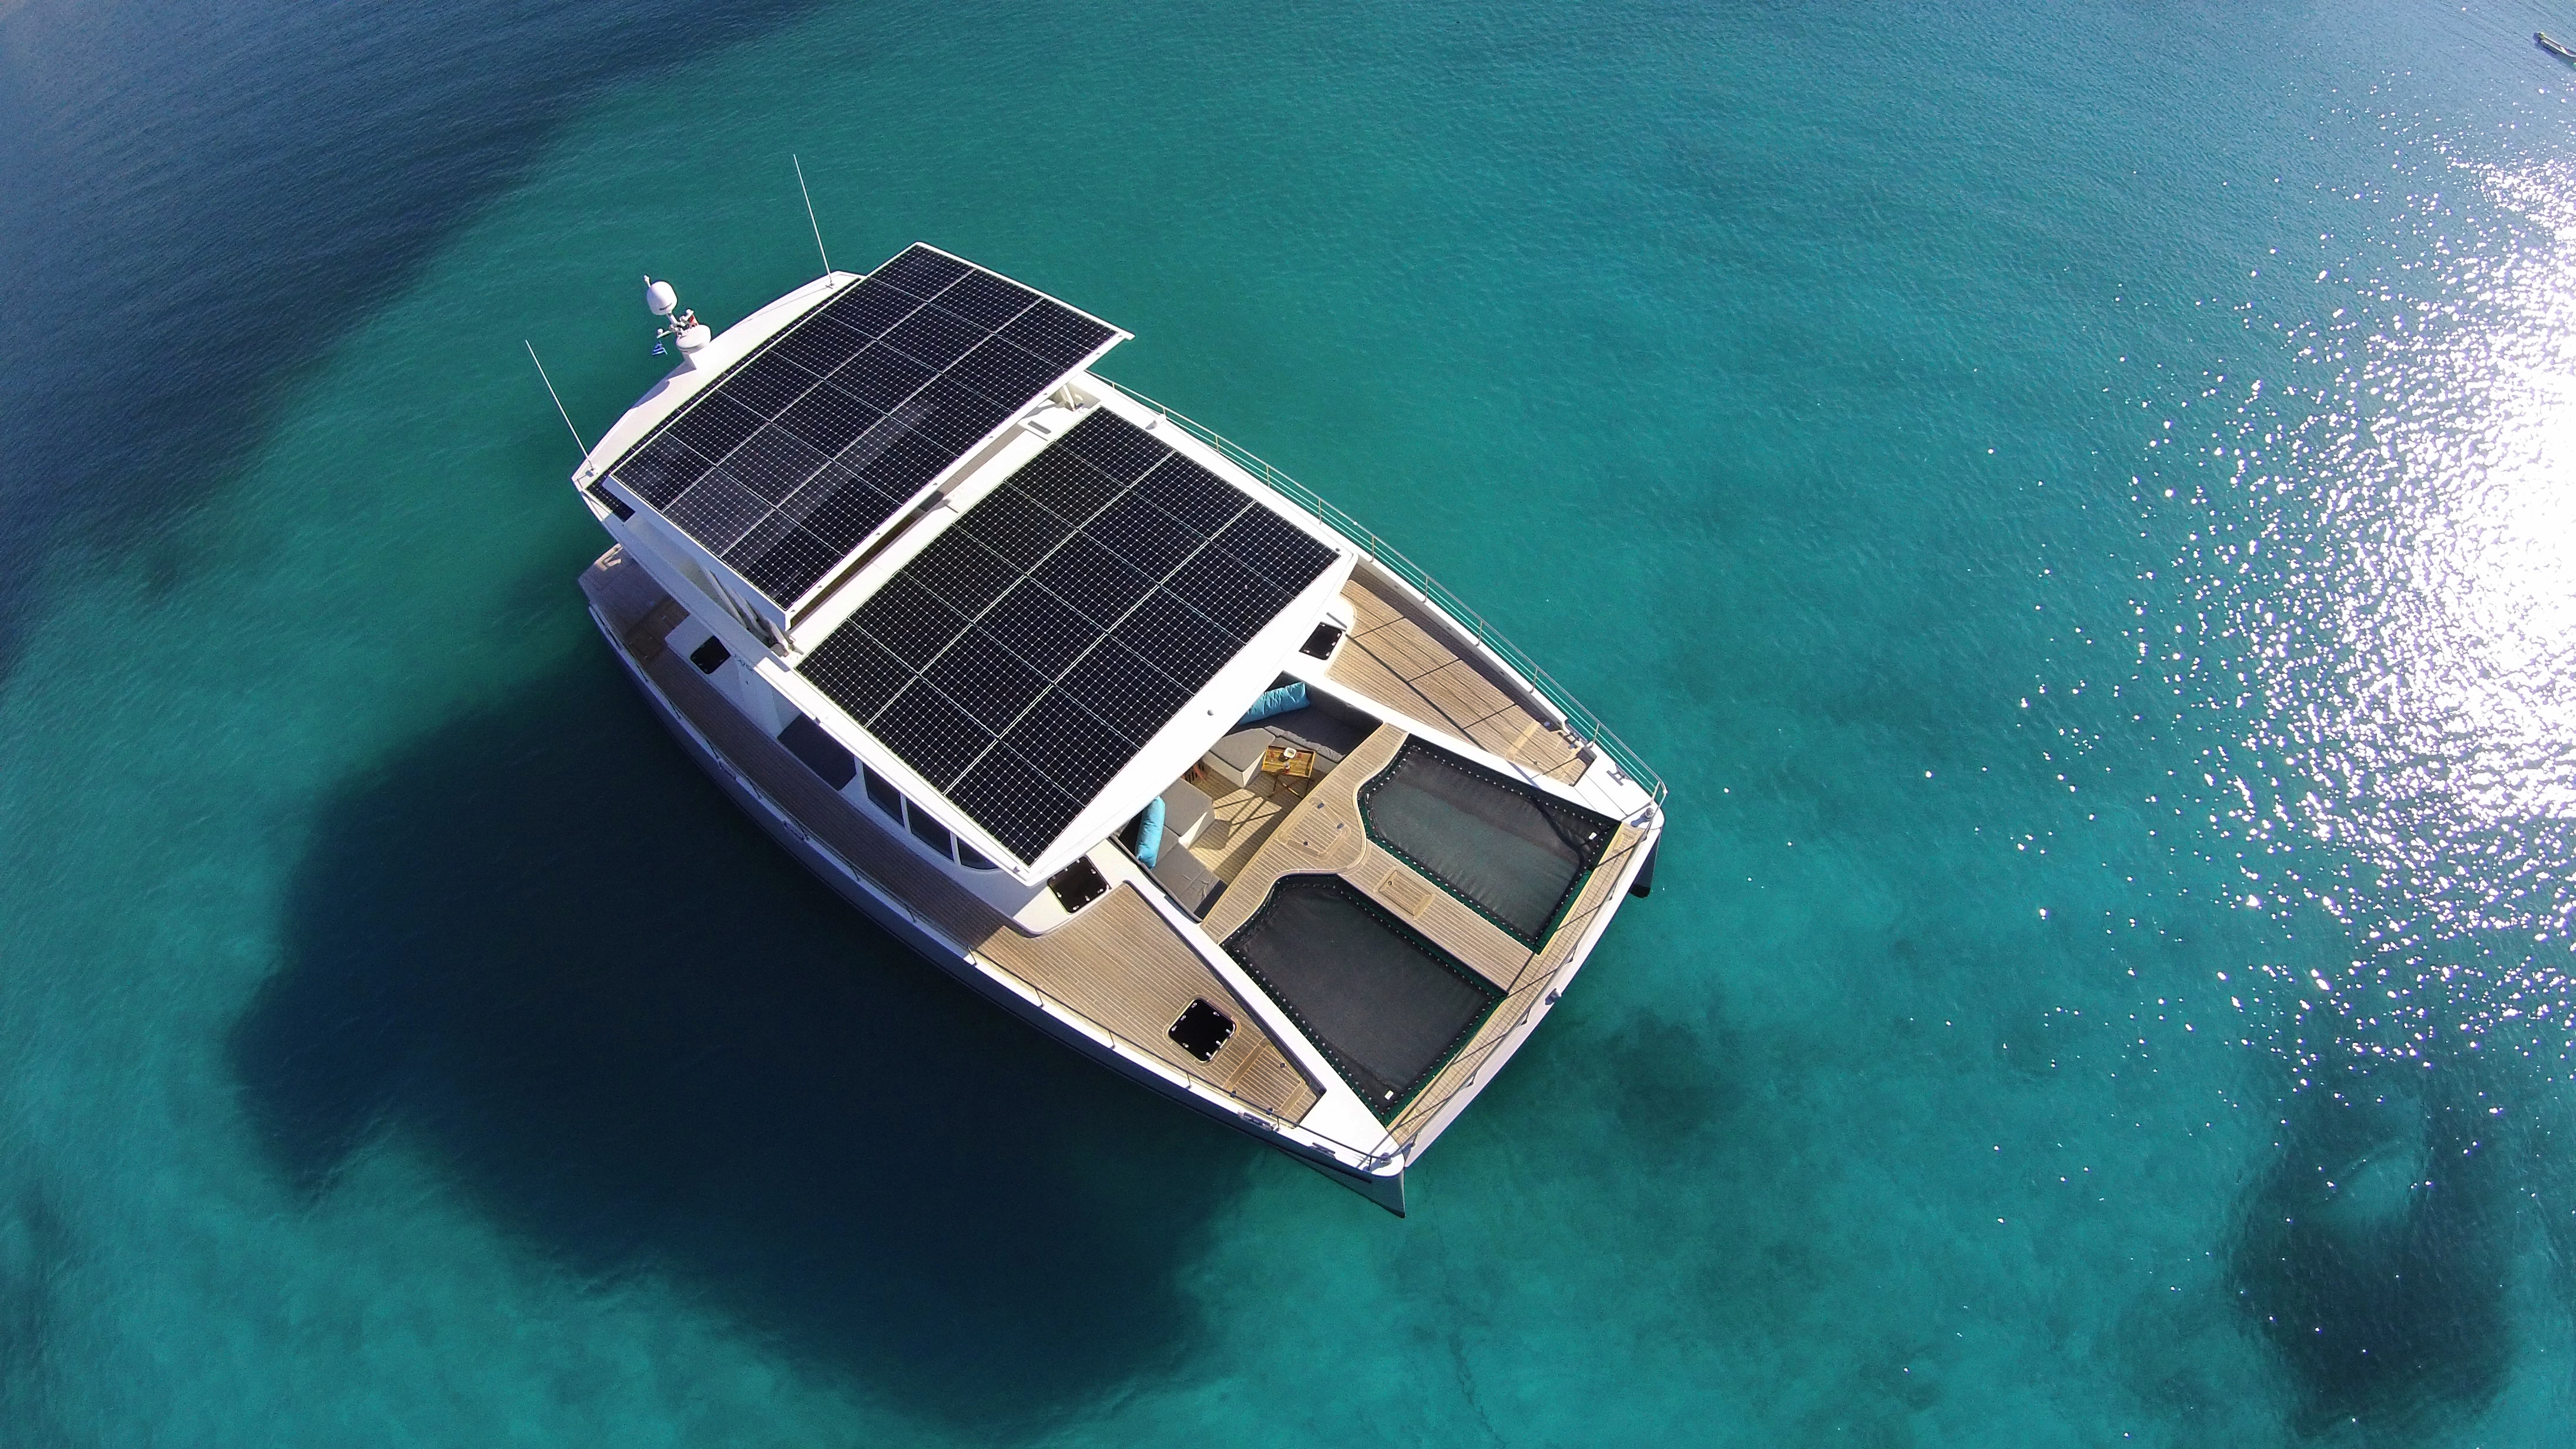 Miami homes neighborhoods architecture and real estate curbed miami miamis first solar powered yacht spotted at eden roc hotel fandeluxe Choice Image